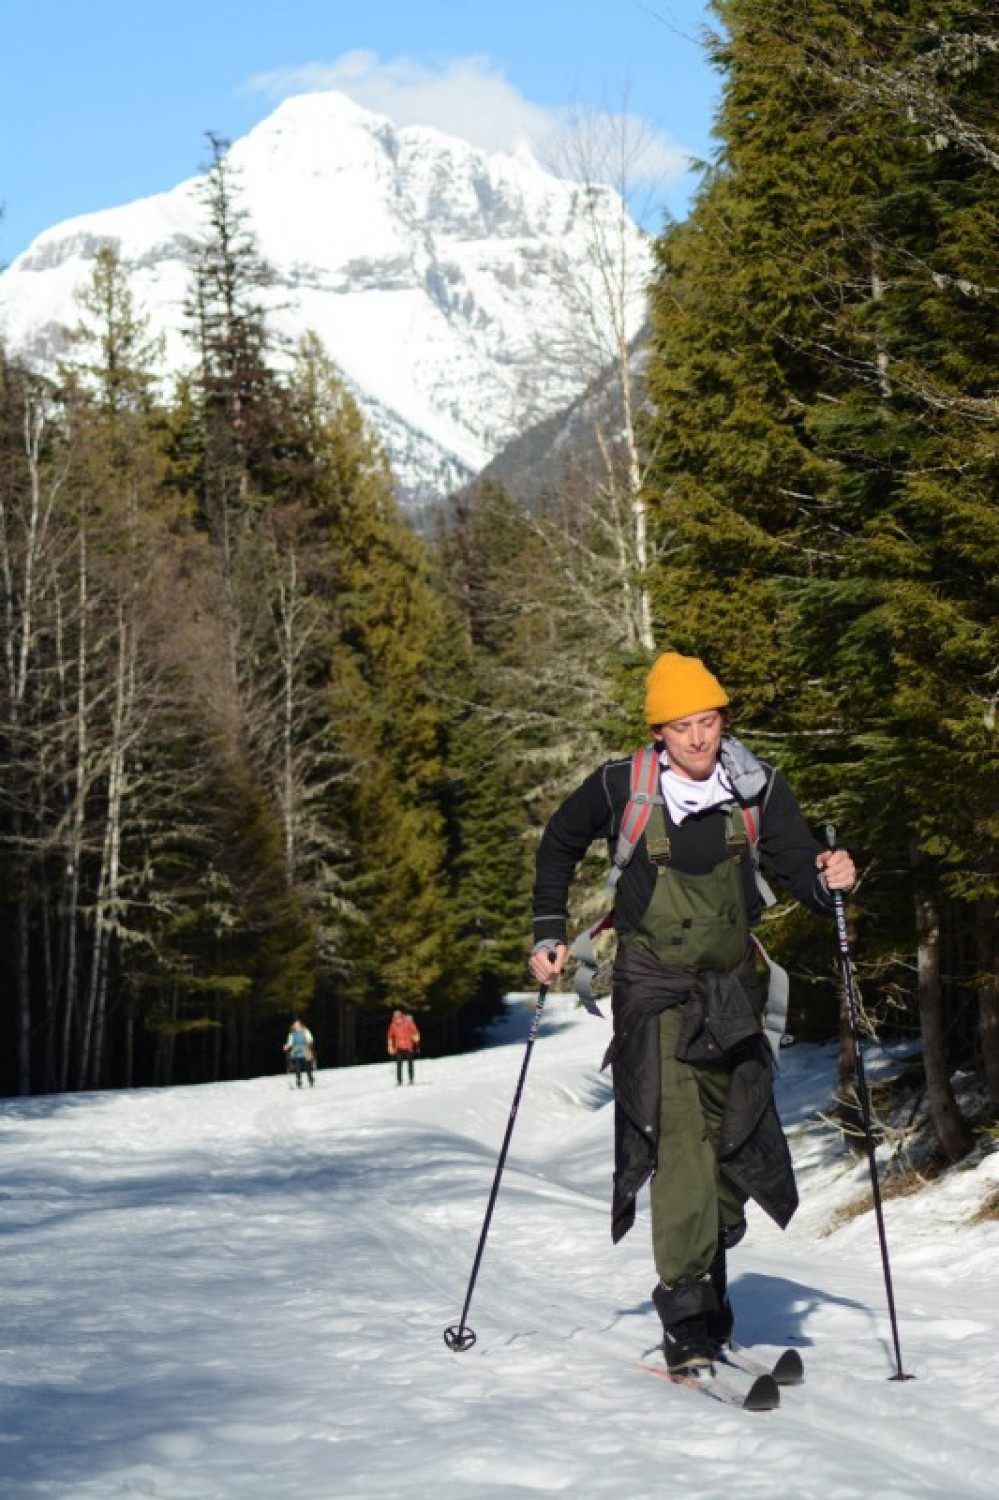 Skiing home on the Sun Road on a warm March afternoon. – Devin Schmit